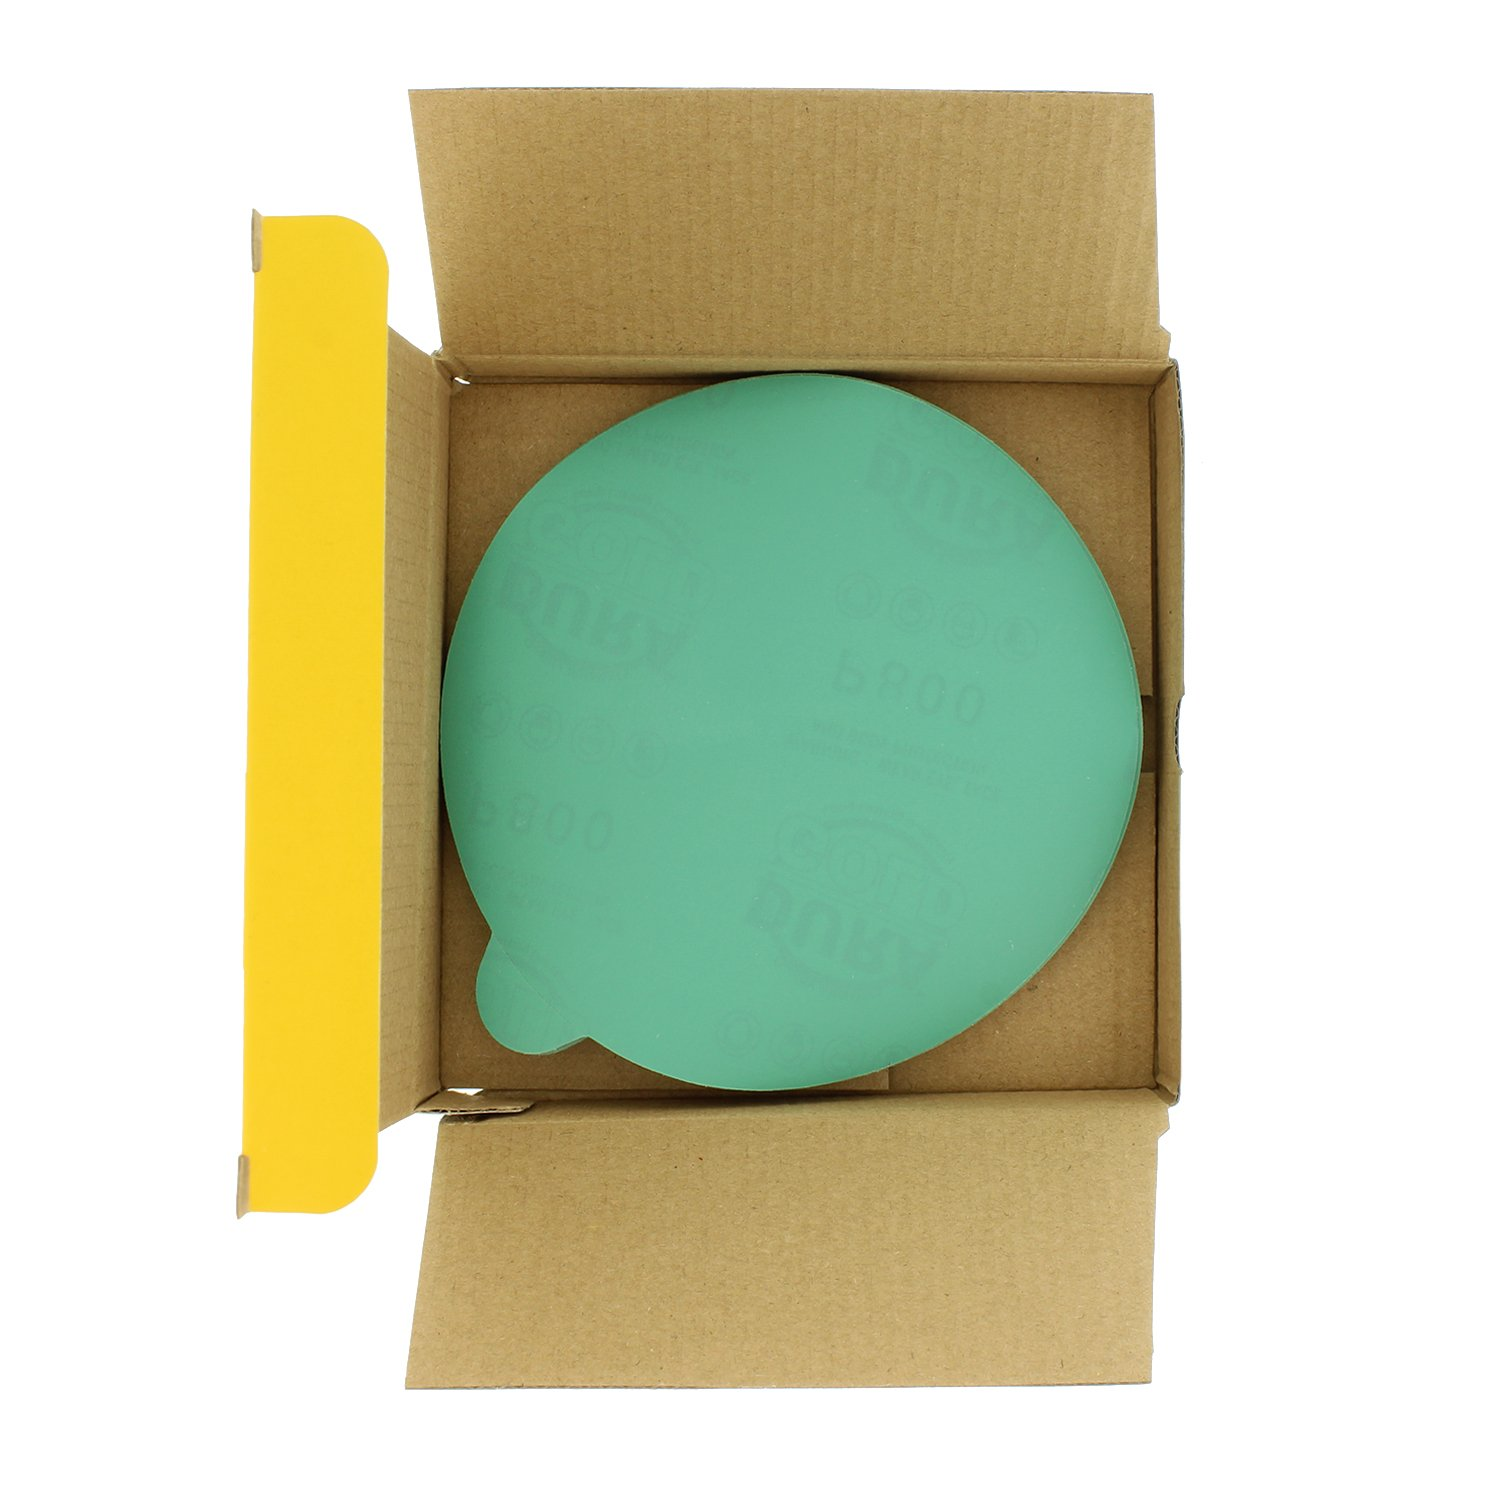 PSA Self Adhesive Stickyback Sanding Discs for DA Sanders Dura-Gold Premium Film Back Box of 25 Sandpaper Finishing Discs for Automotive and Woodworking 80 Grit 6 Green Film